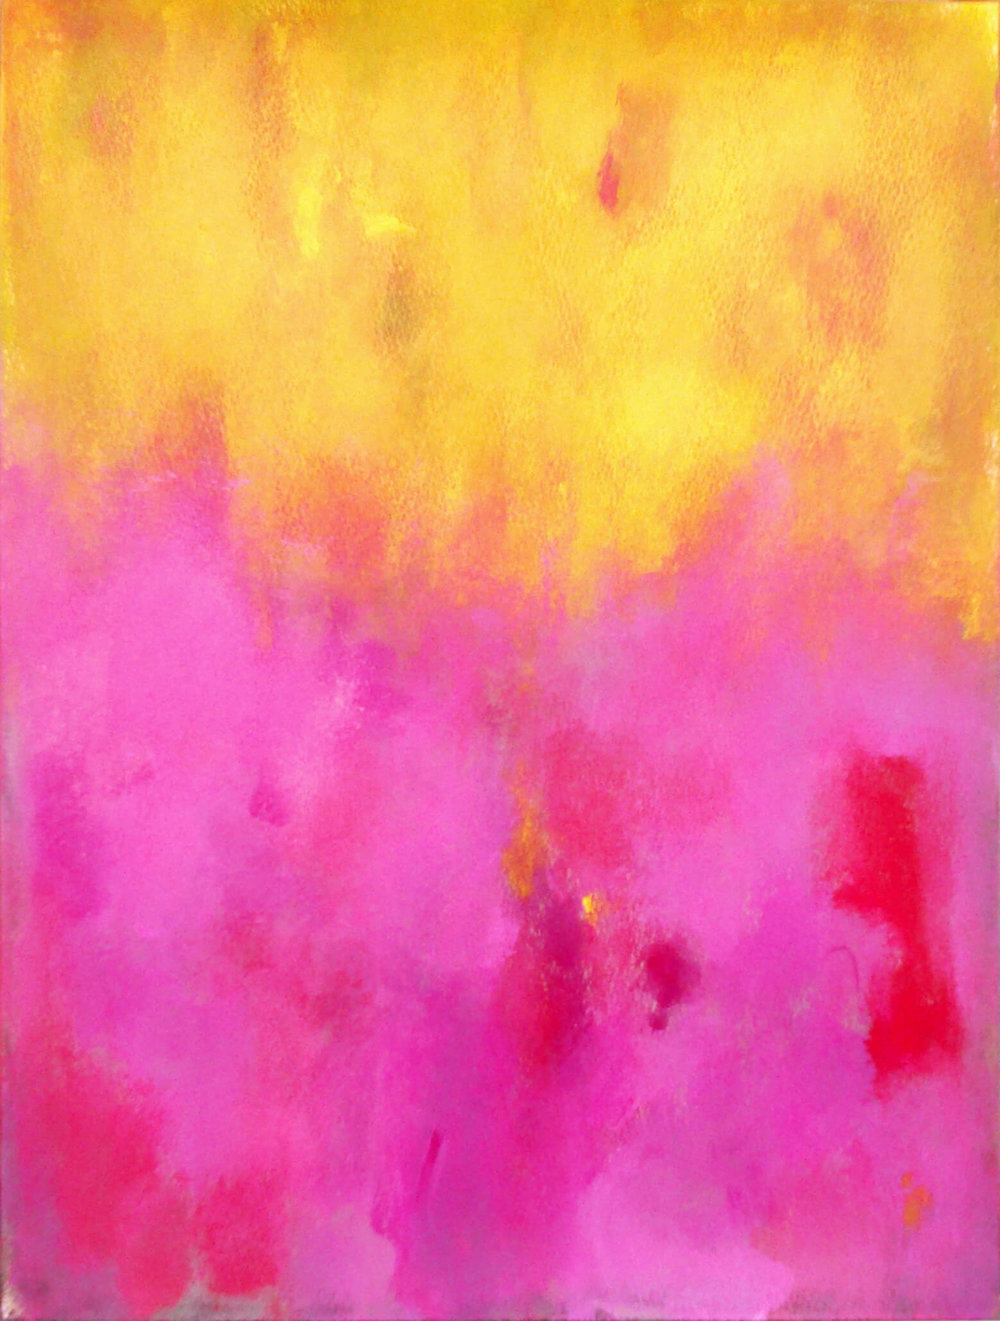 LUIS MEDINA MANSO, Pink Against Yellow